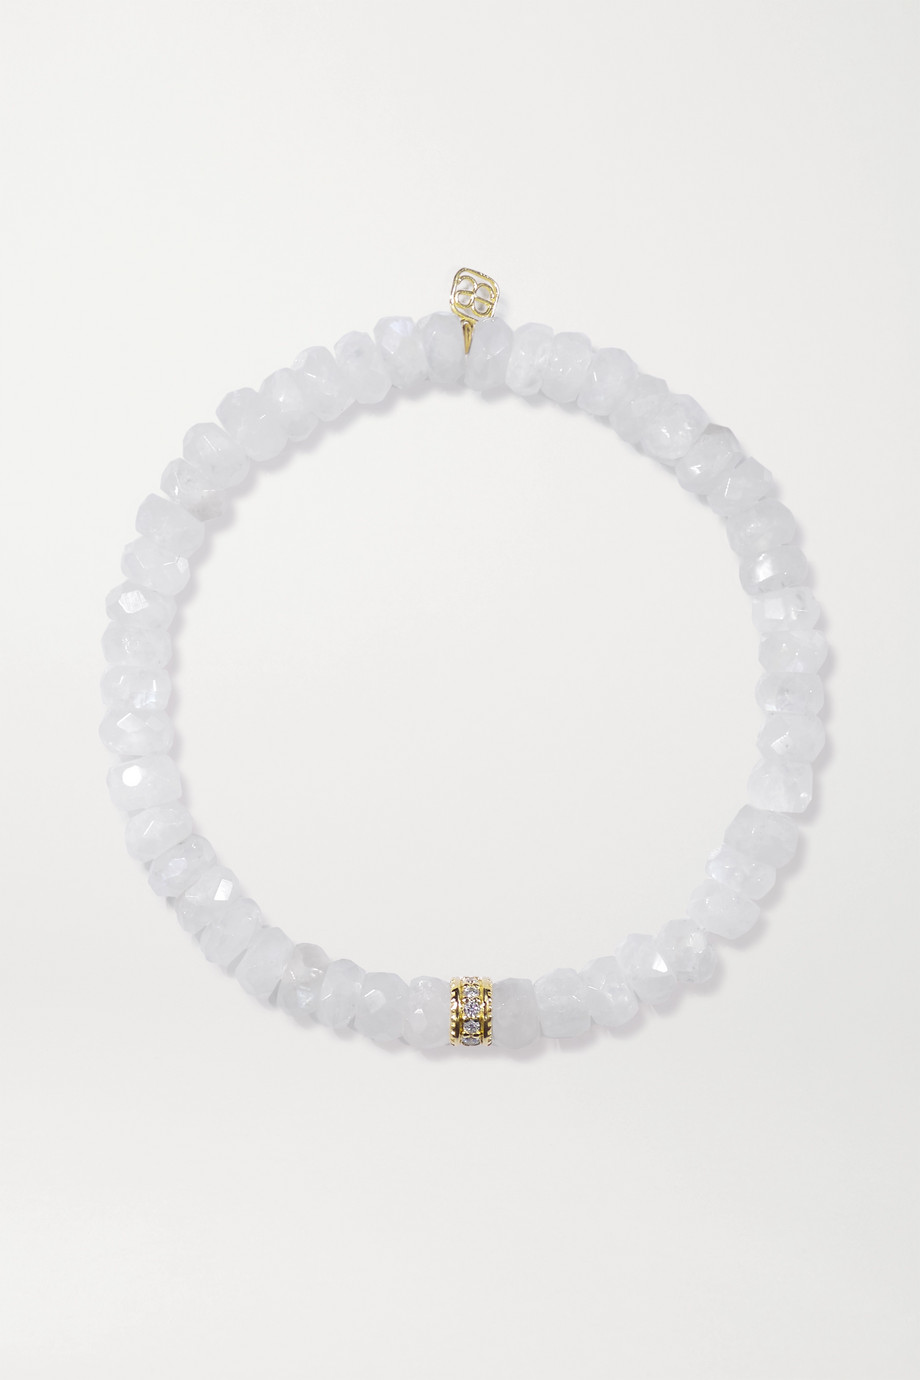 SYDNEY EVAN 14-karat gold, moonstone and diamond bracelet